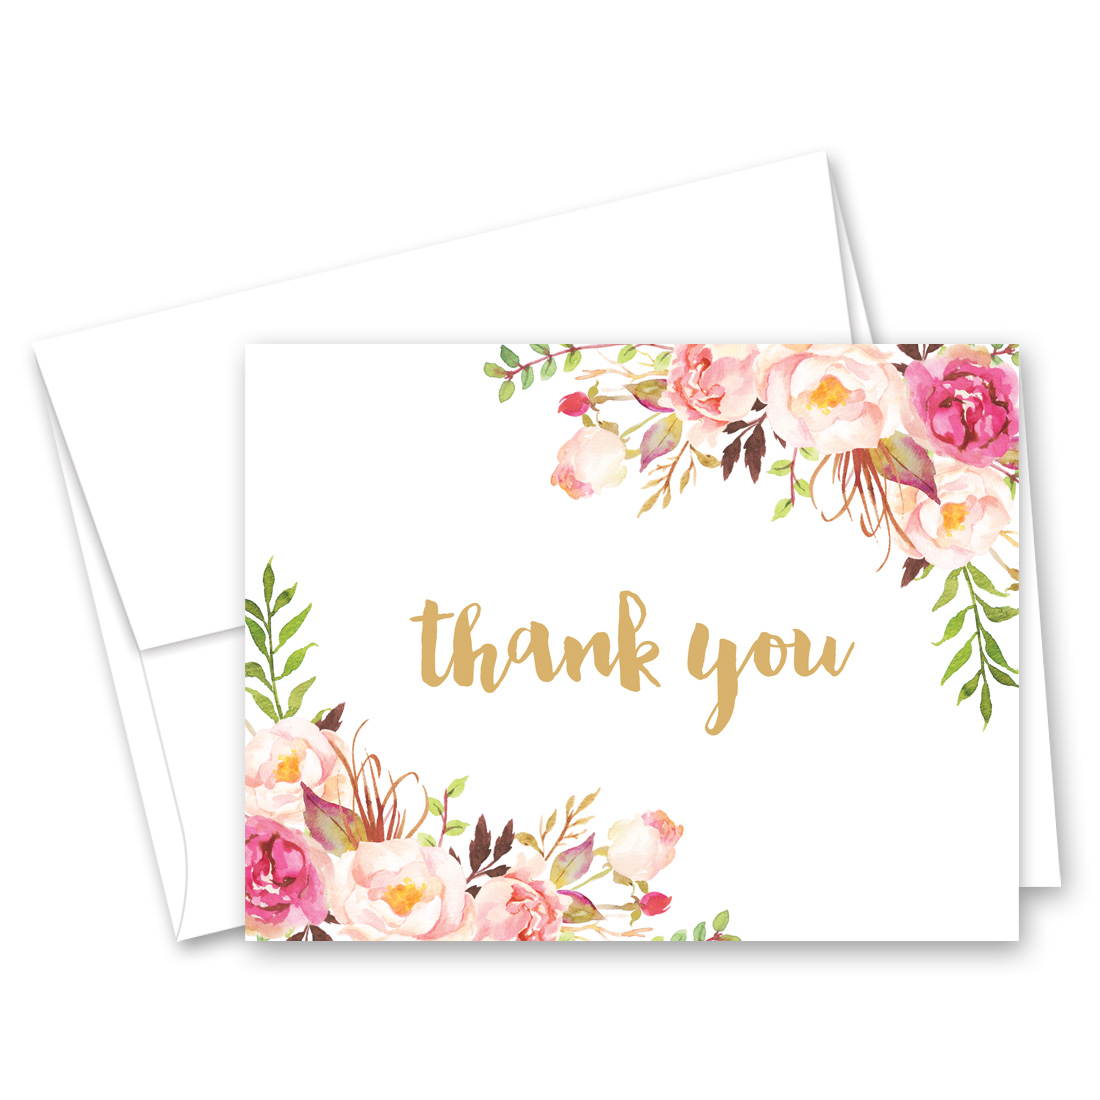 Watercolor Floral Thank You Cards and Envelopes - 50 Count